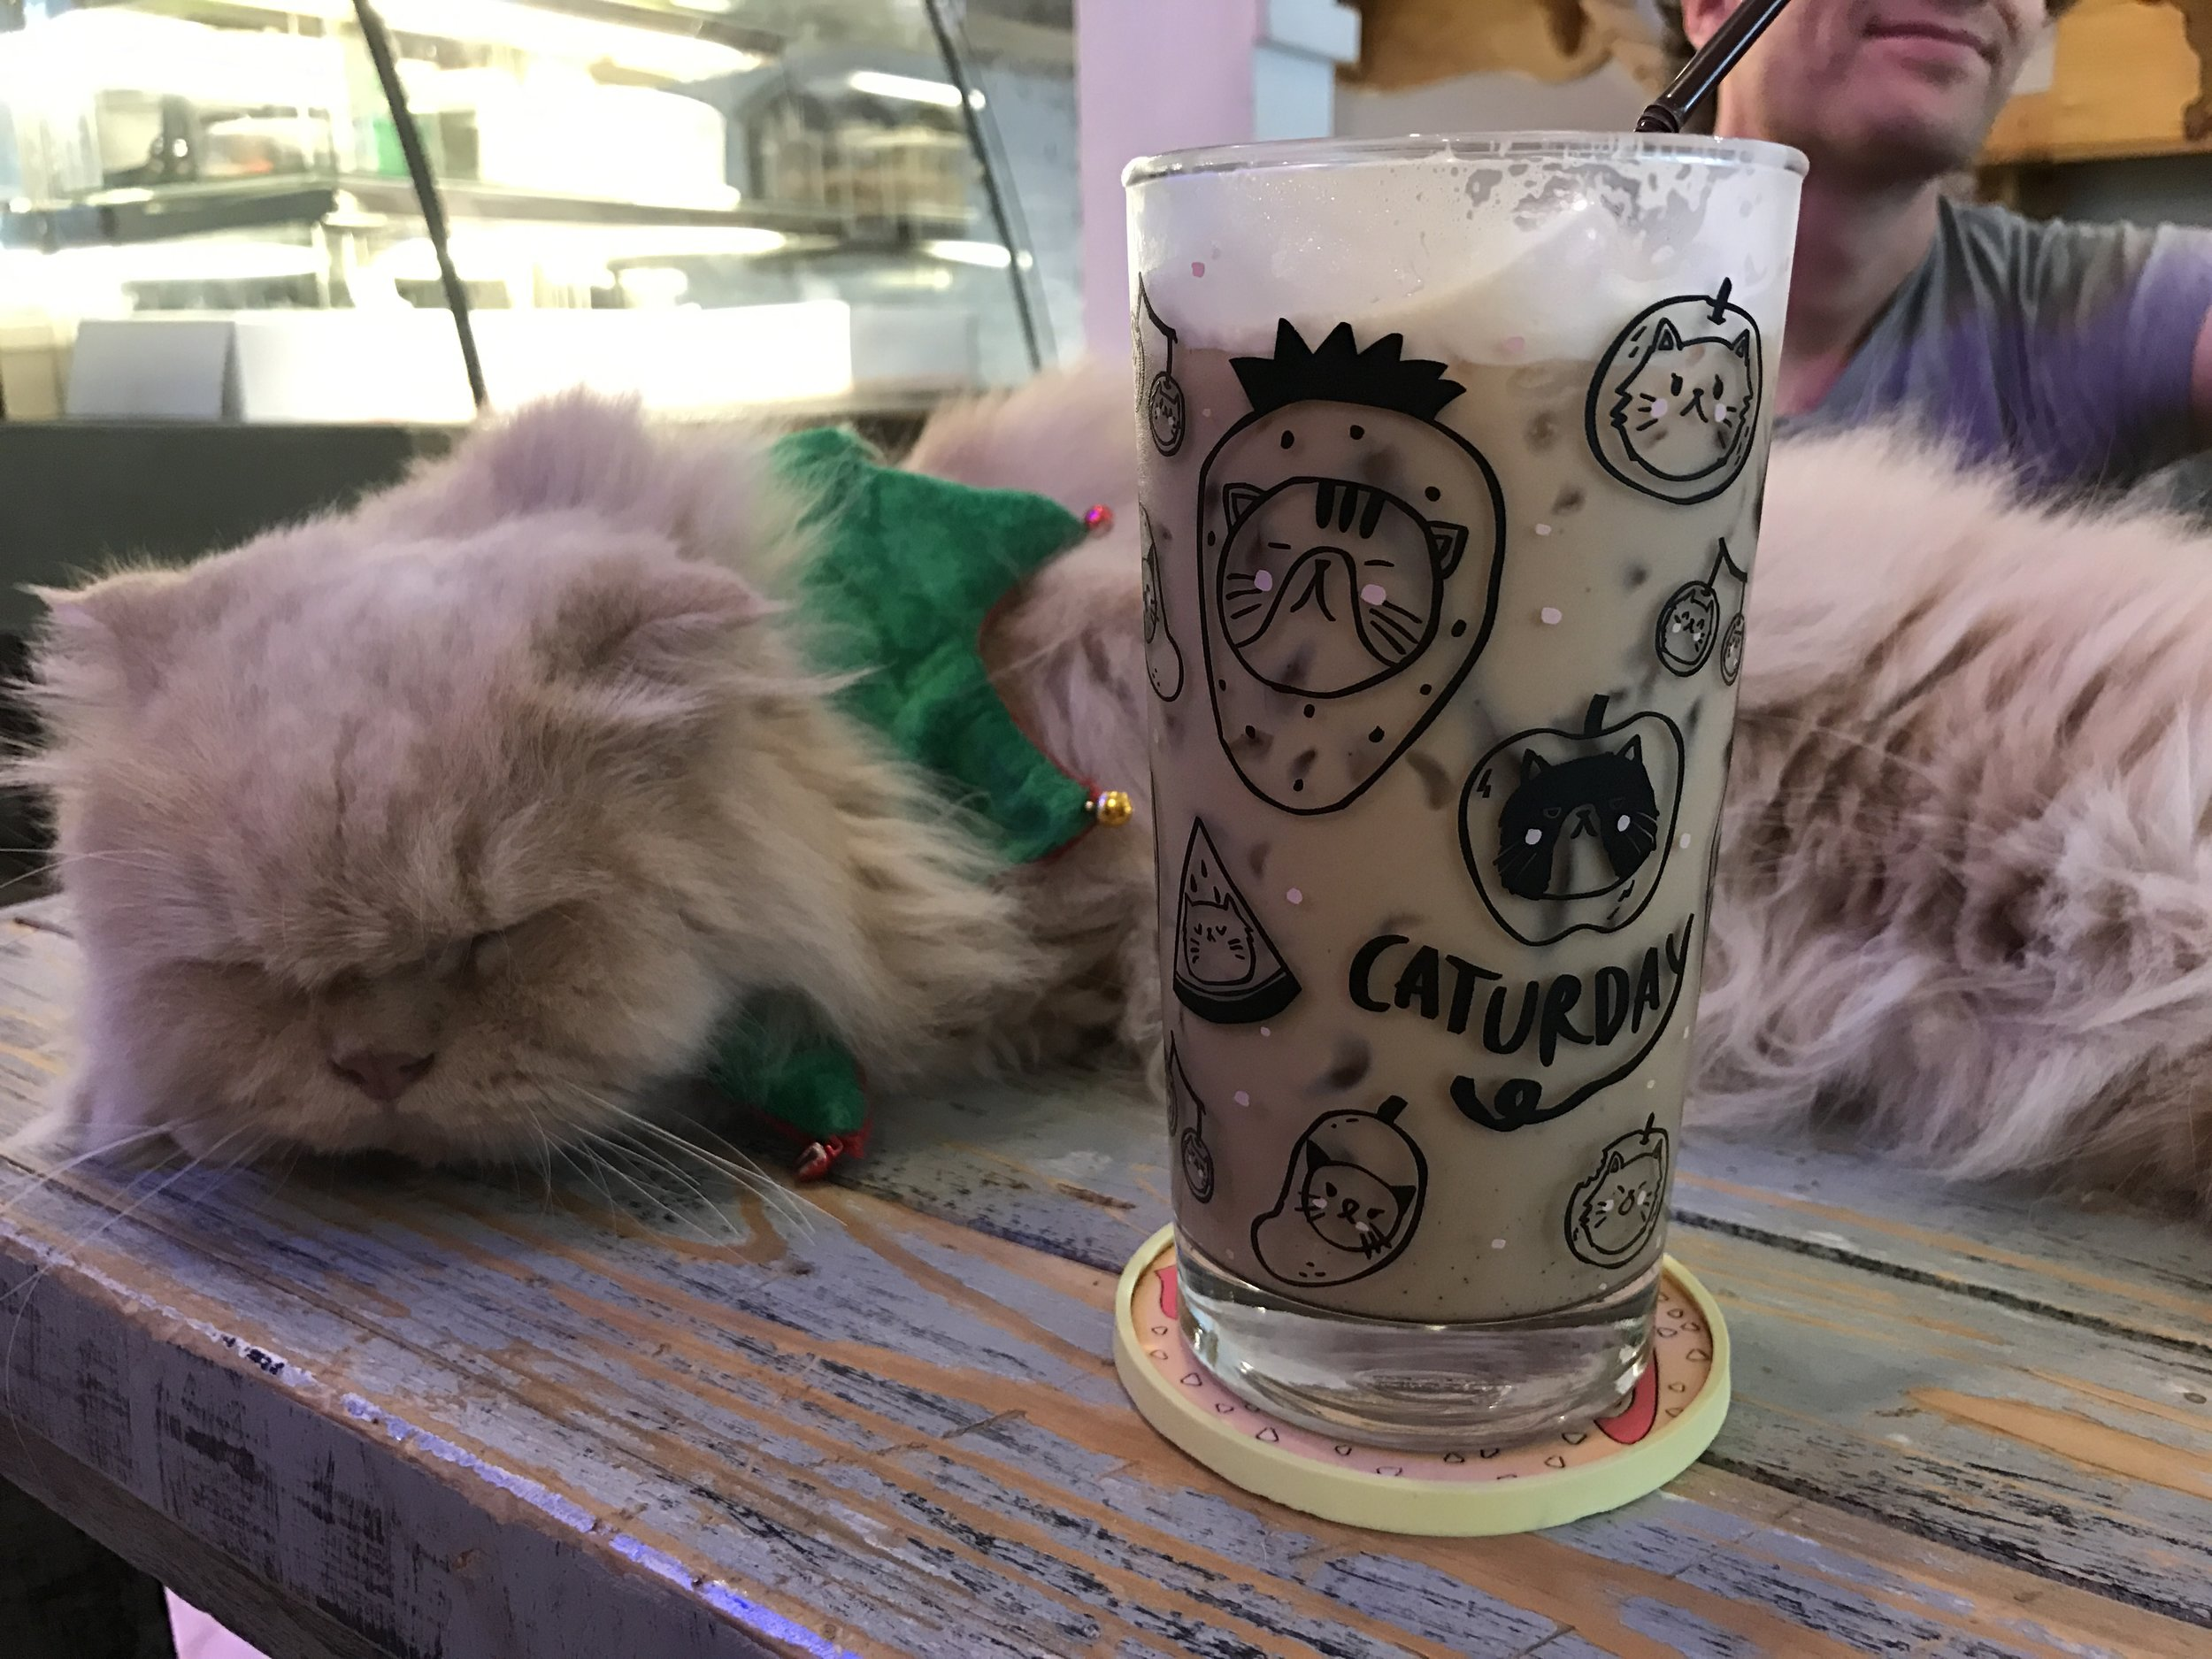 Caturday Cat Cafe drink